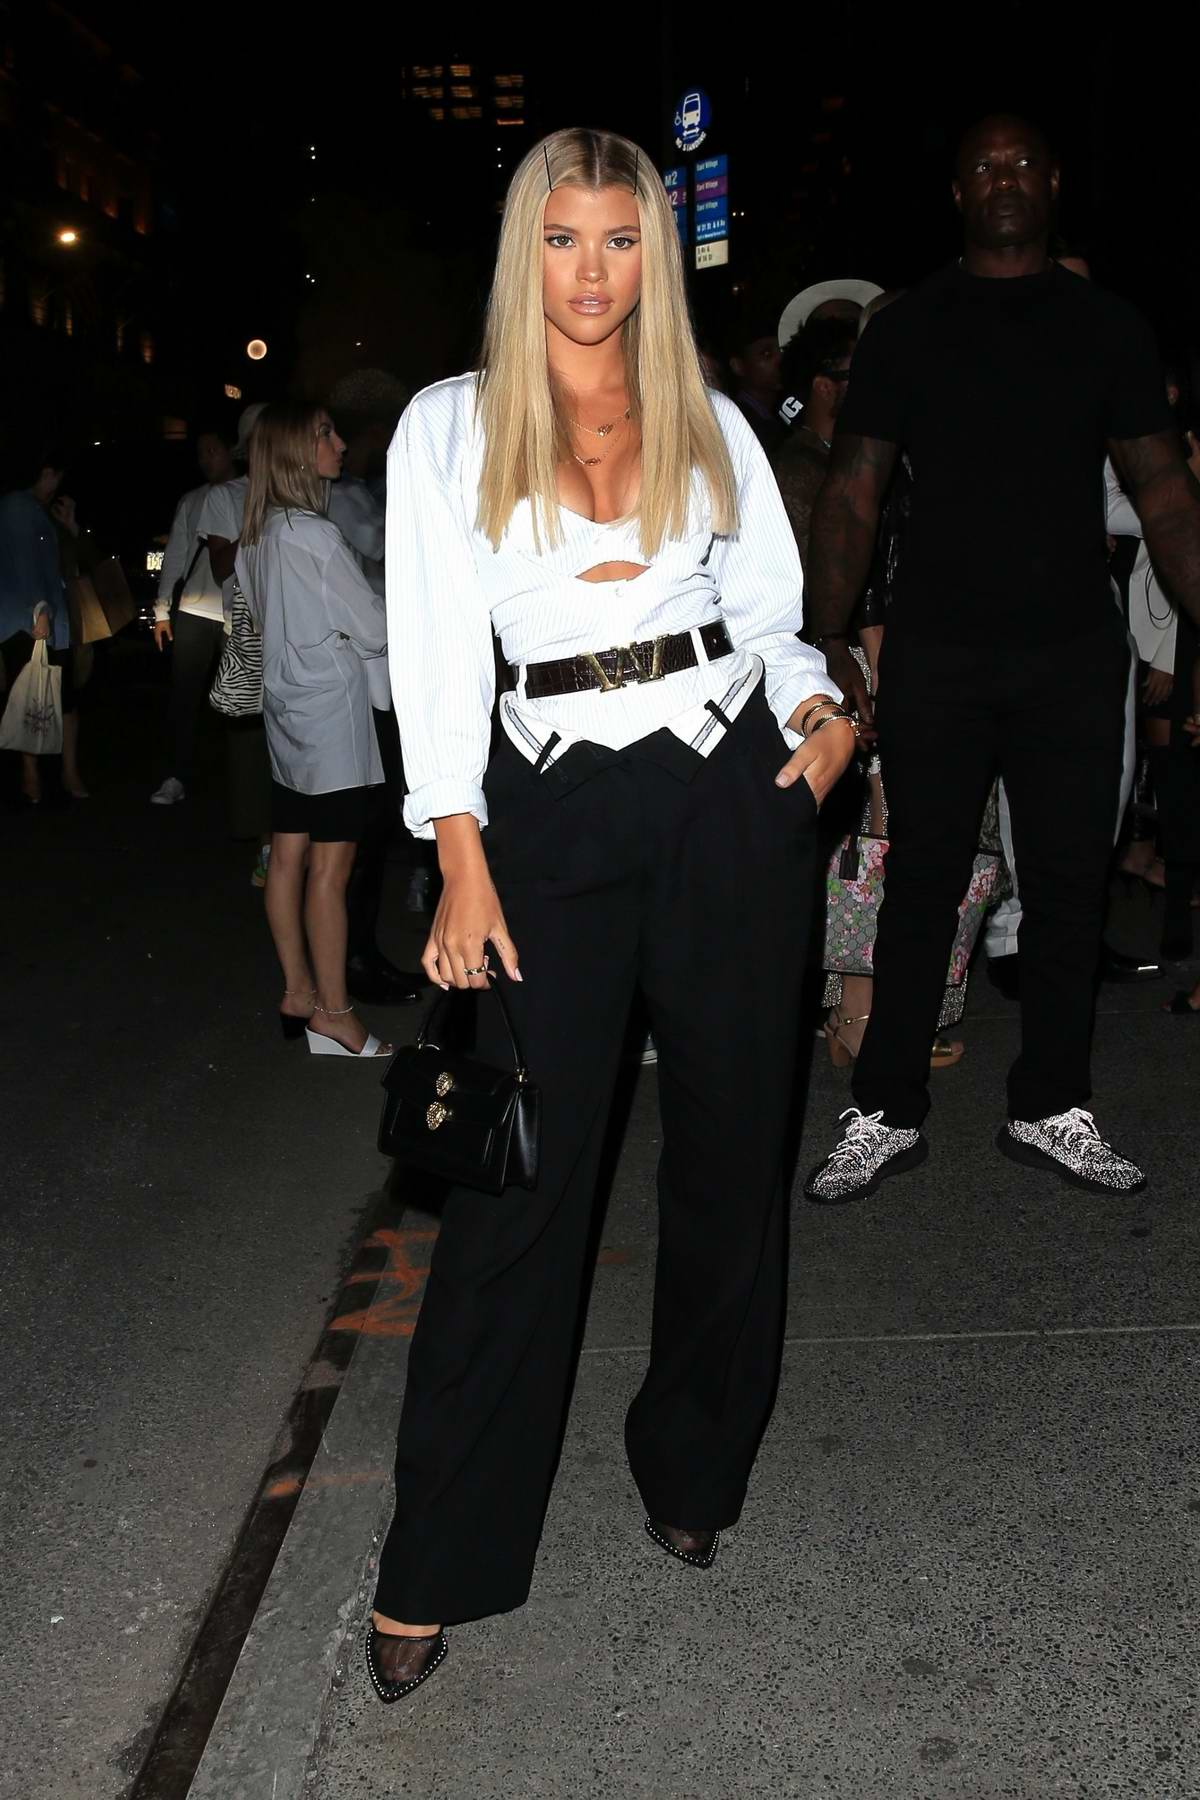 Sofia Richie looks amazing as she arrives at Alexander Wang's party during New York Fashion Week in New York City